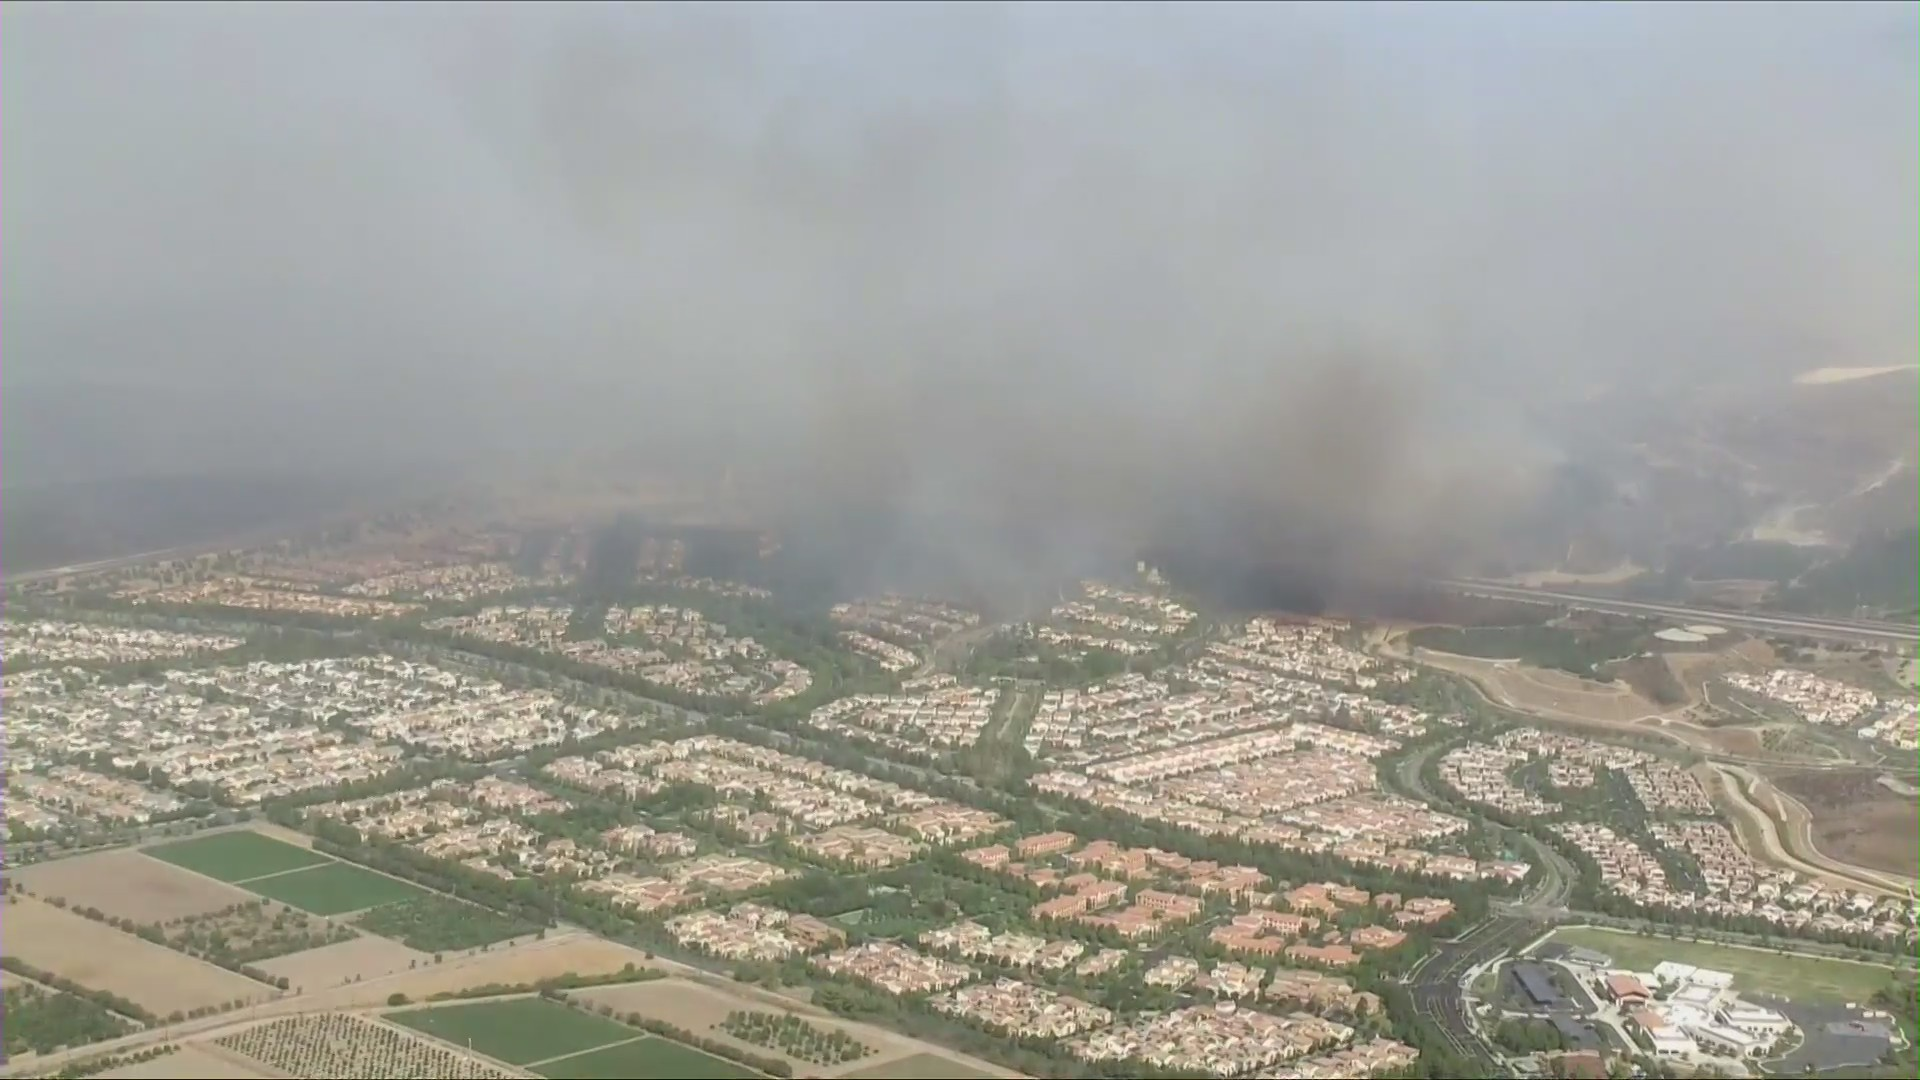 Smoke from the Silverado Fire rises over Irvine and the surrounding area on Oct. 26, 2020. (Sky5)